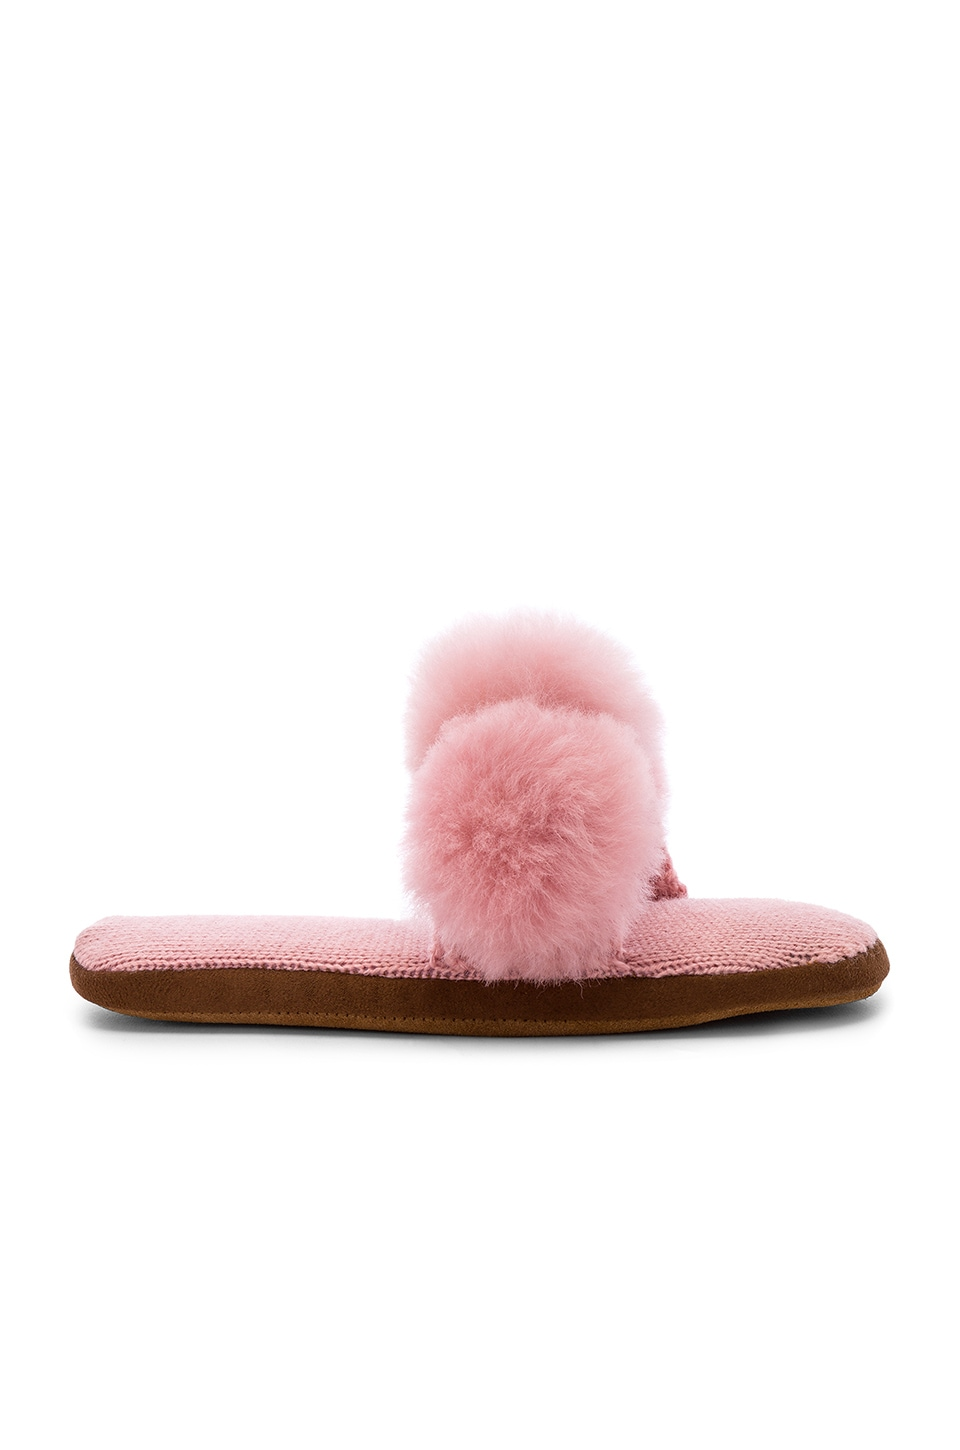 ARIANA BOHLING Triple Pom Slide in Pink